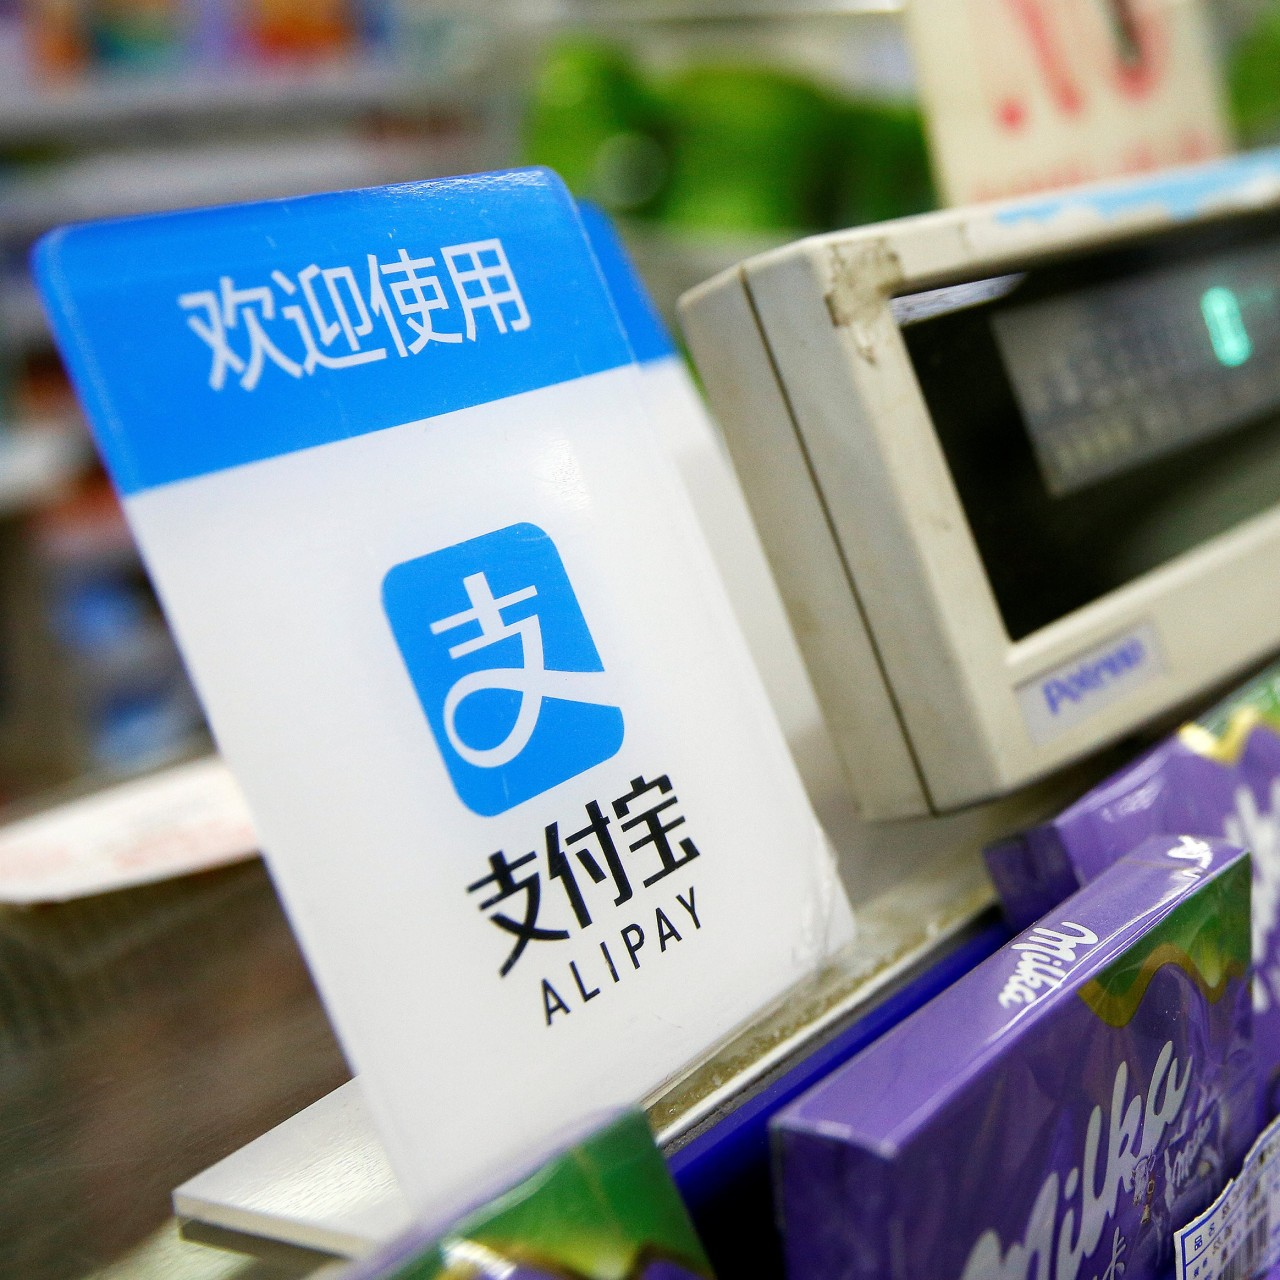 Alipay And Six European Digital Wallets Join Hands To Increase